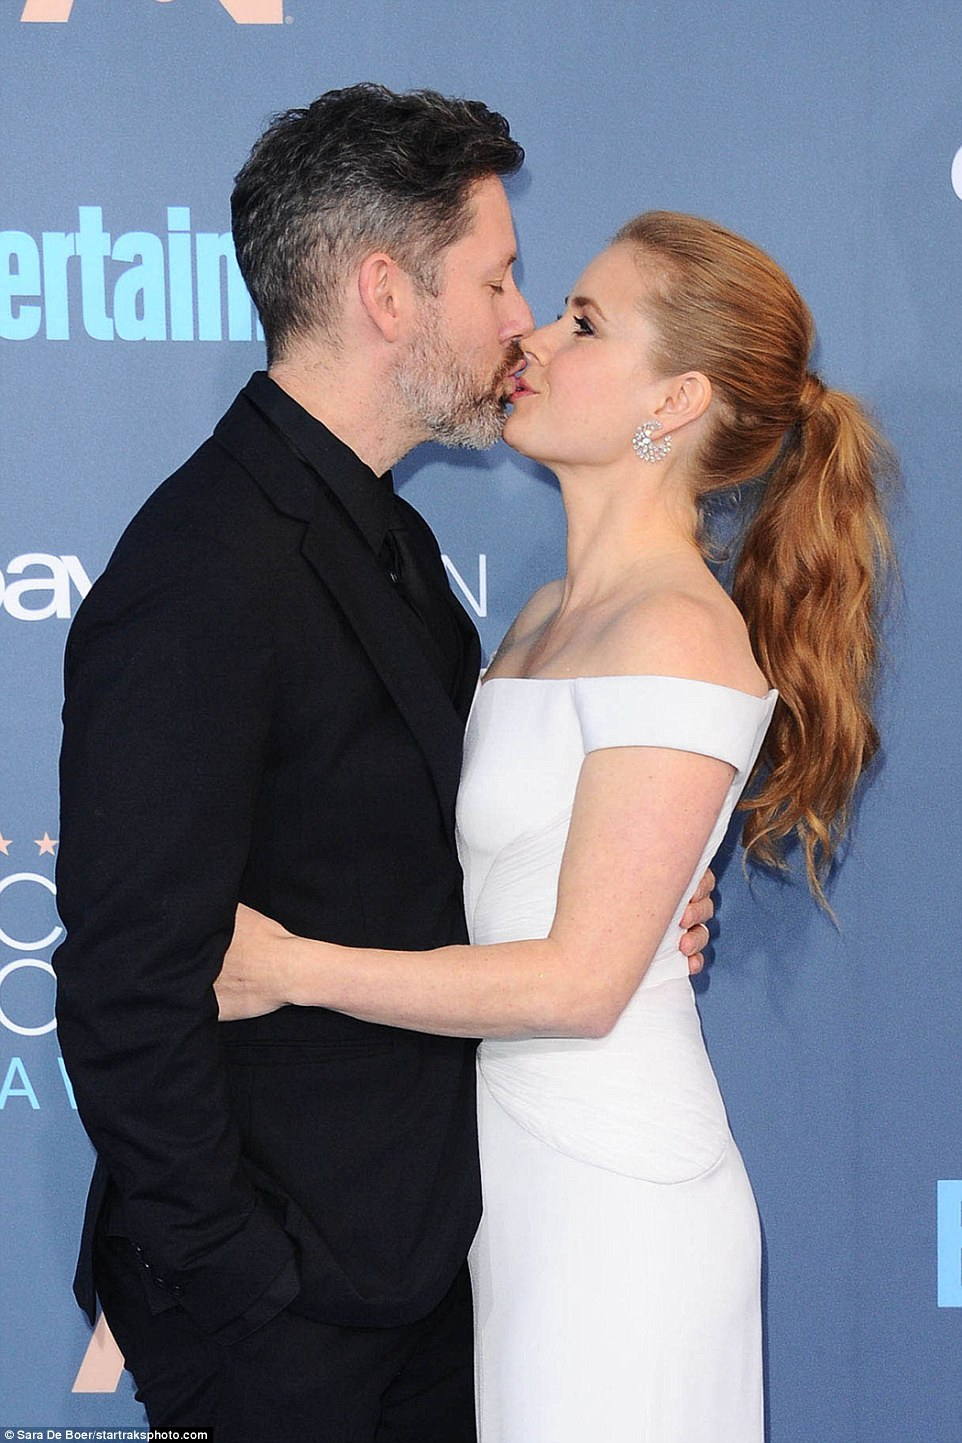 Pucker up! The Nocturnal Animals star shared a smooch with her husband in front of cameras